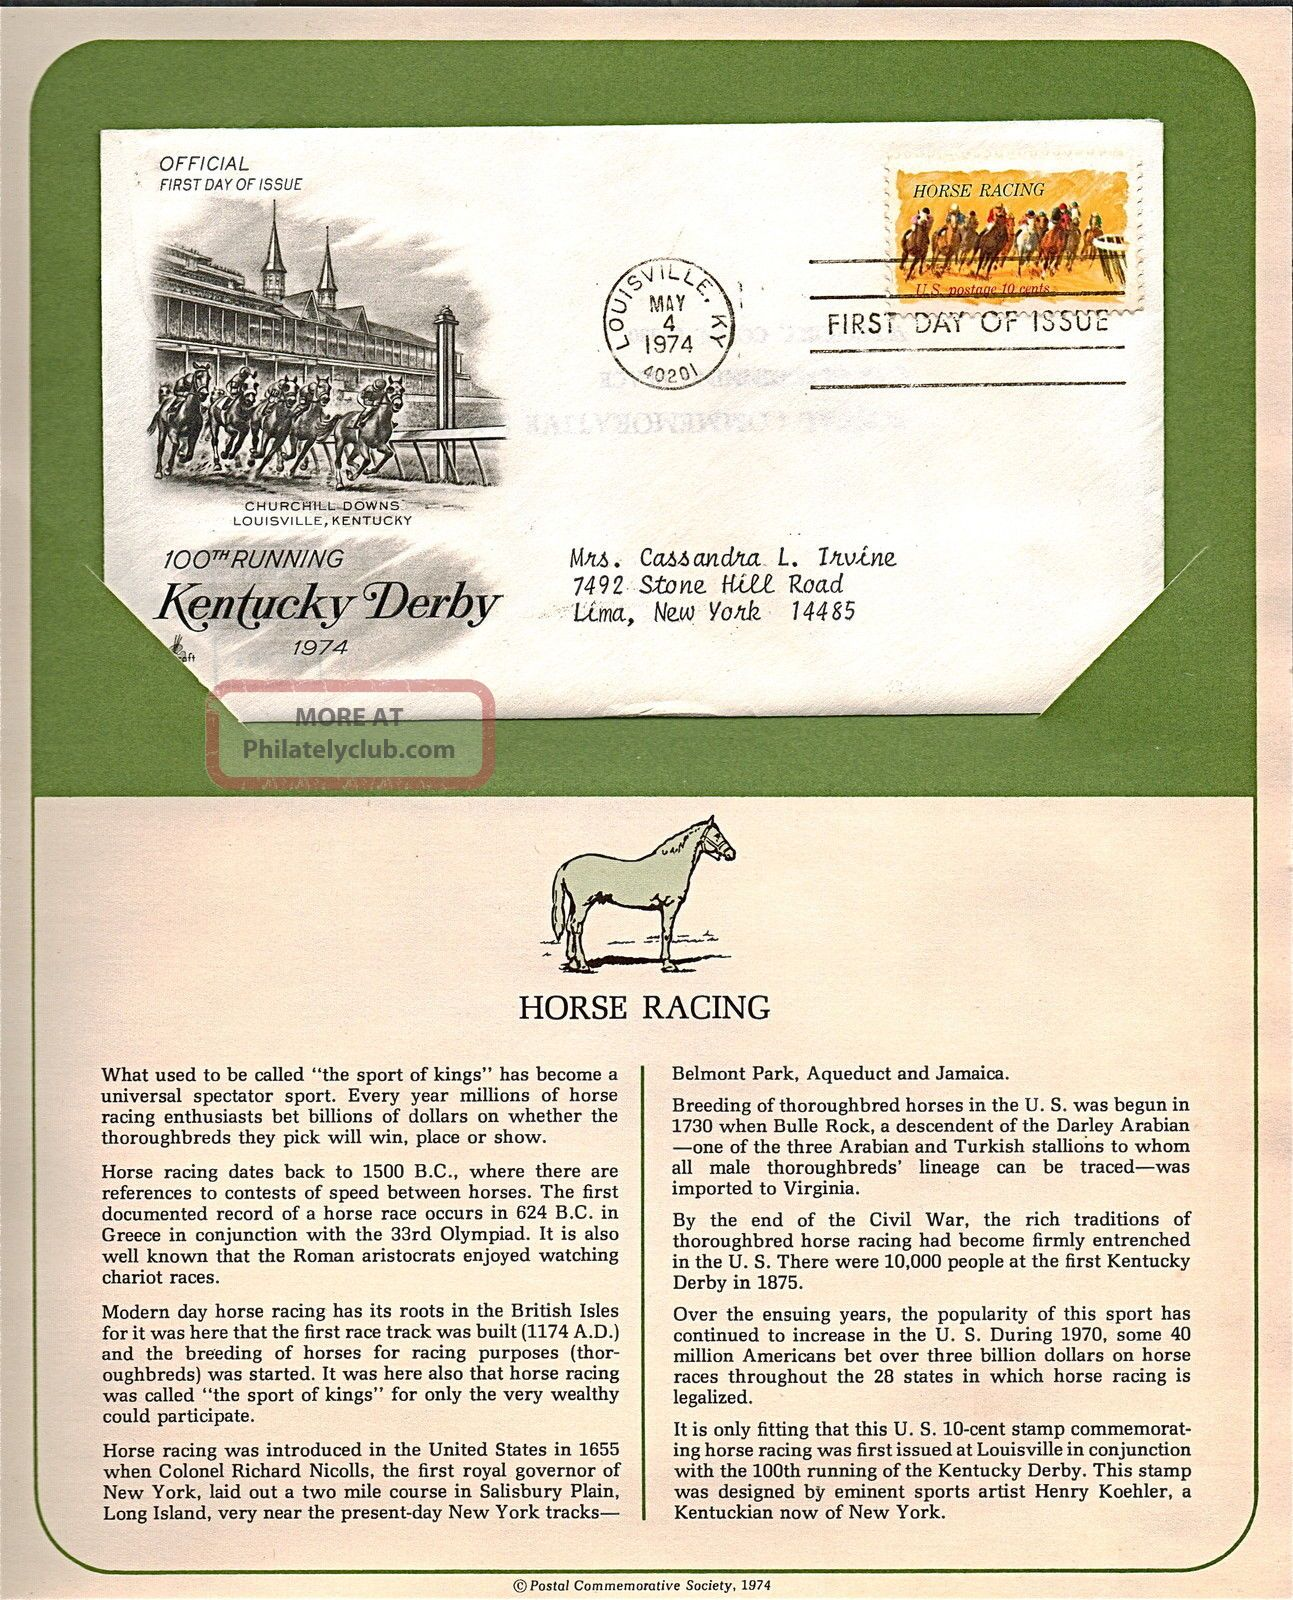 Kentucky Derby 100th Running Fdc Cachet,  Issued 1974,  Collectible,  Scott 1528 F29 Worldwide photo